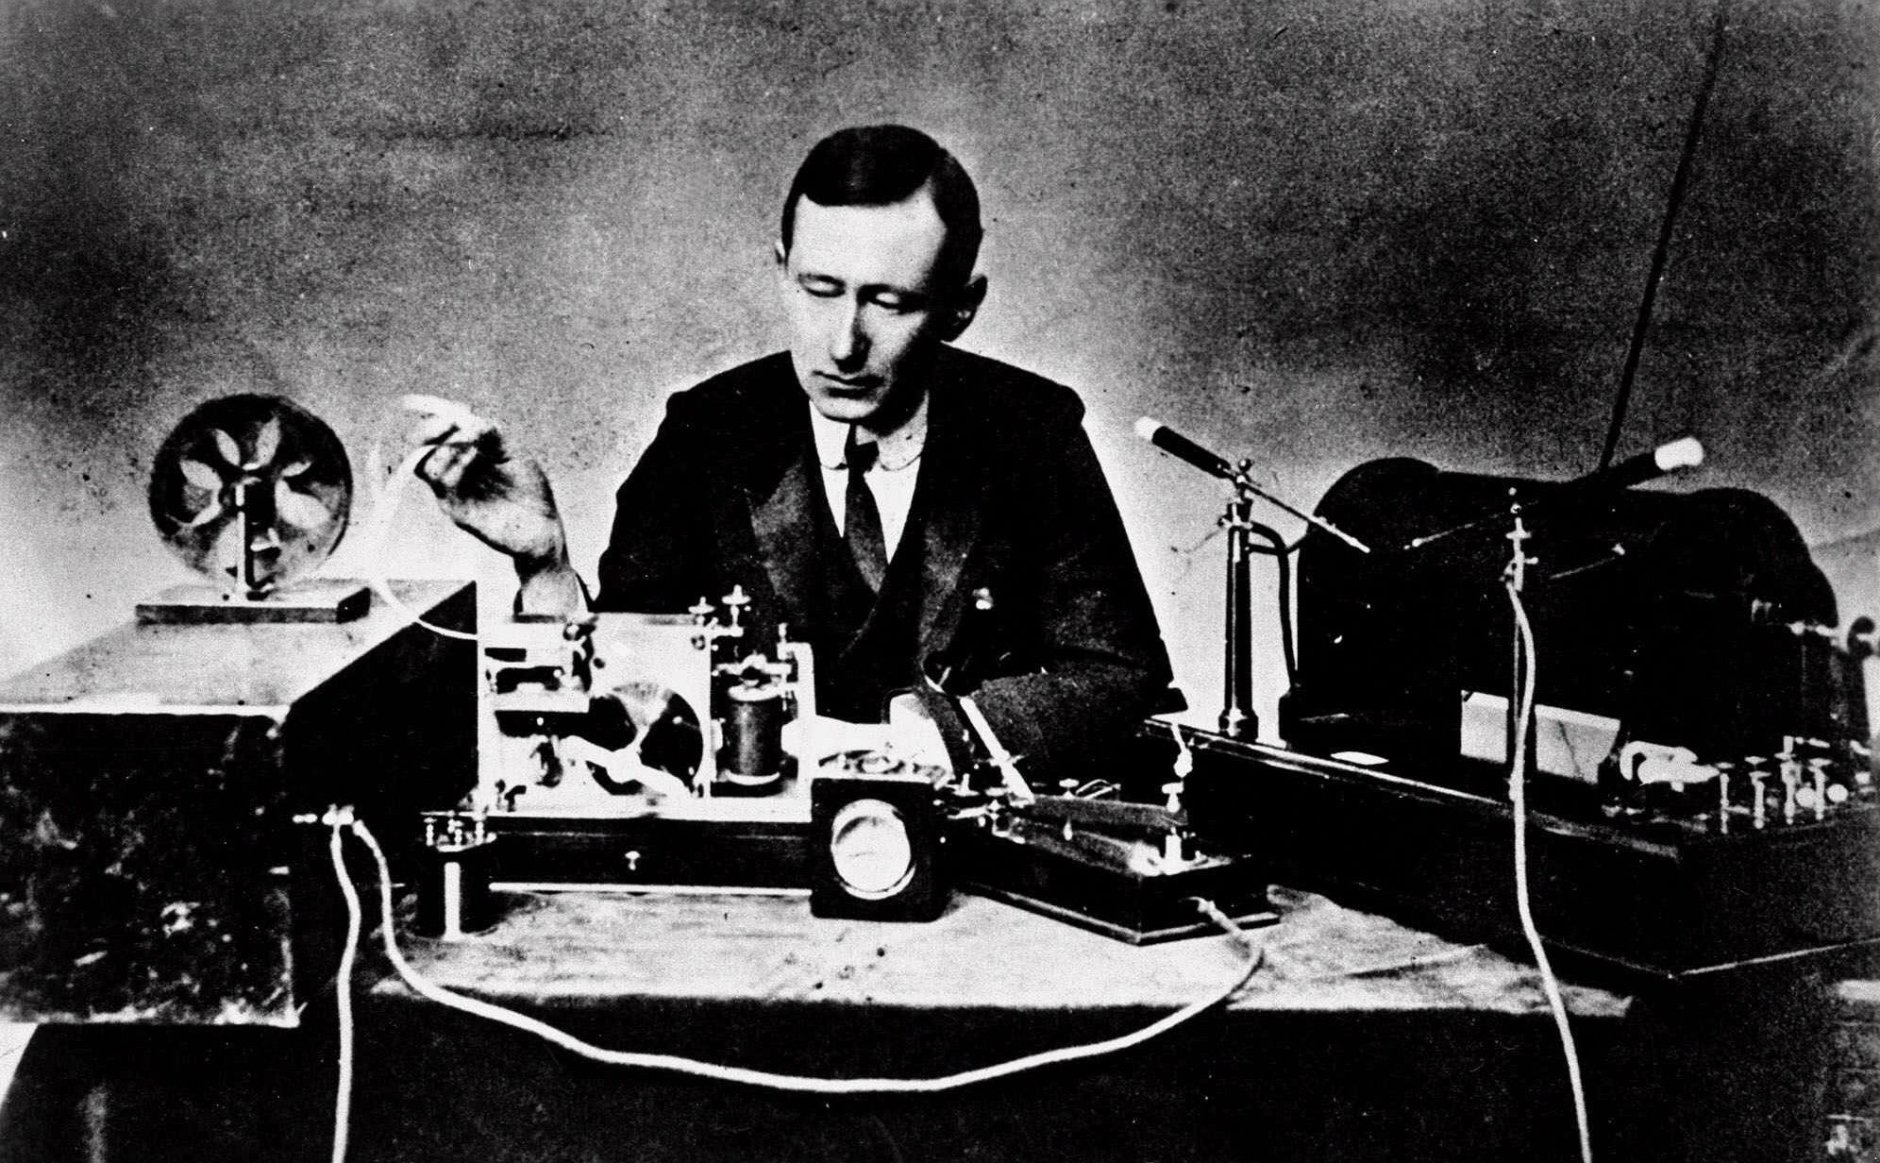 Italian physicist Guglielmo Marconi, who claimed he invented radio, reads signals on a tape recorder, left, with a 10-inch spark coil used for ship-to-shore radio tests in this 1901 photo.  (AP Photo)